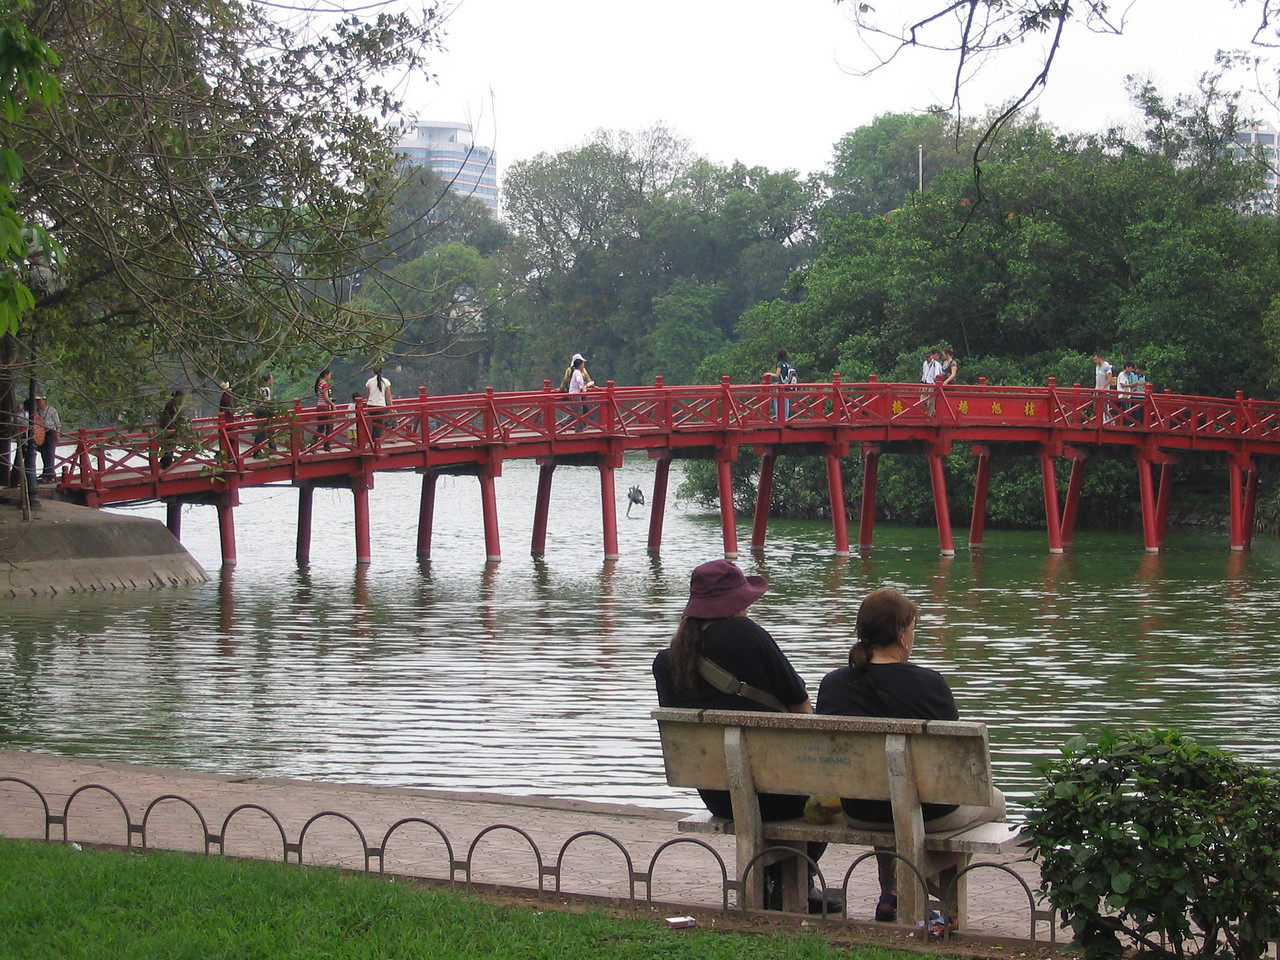 "Hoan Kiem Lake, the center of old Hanoi. The bridge leads to an island and a temple dedicated to the legend of the lake. More Info <a href=""http://en.wikipedia.org/wiki/Hoan_Kiem_Lake"">http://en.wikipedia.org/wiki/Hoan_Kiem_Lake</a>"